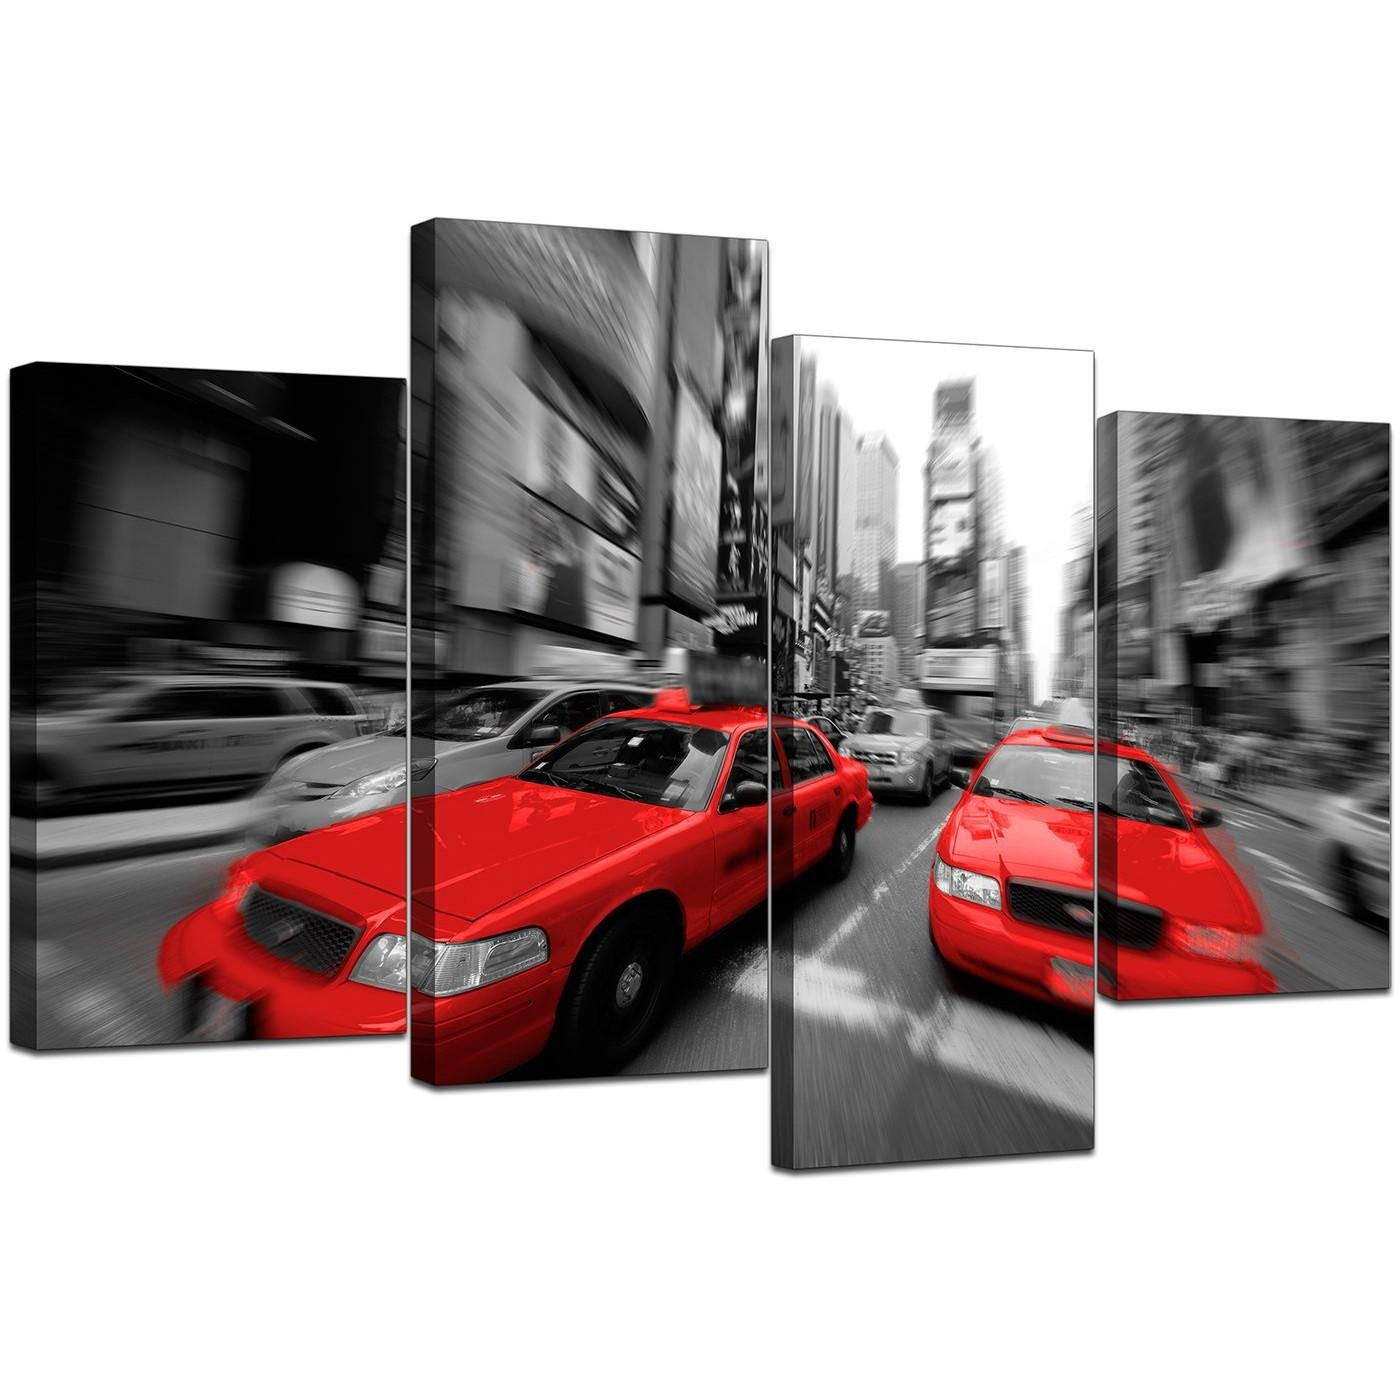 New York Canvas Prints In Black White & Red - For Living Room with regard to Black and White Wall Art With Red